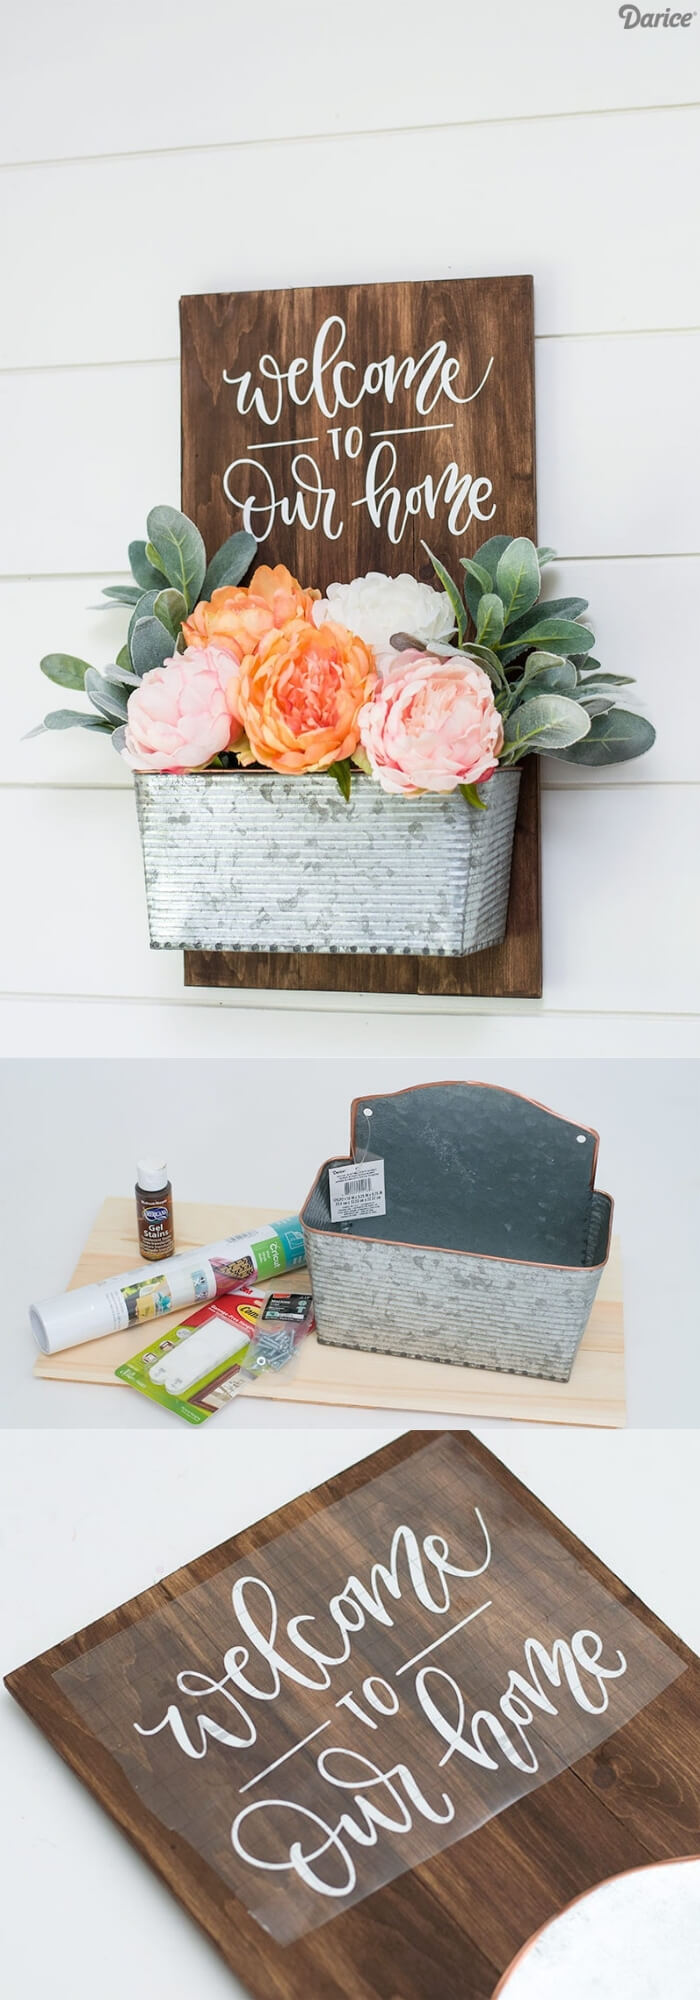 Welcome to my home | Best Spring Porch Sign Decor Ideas & Designs